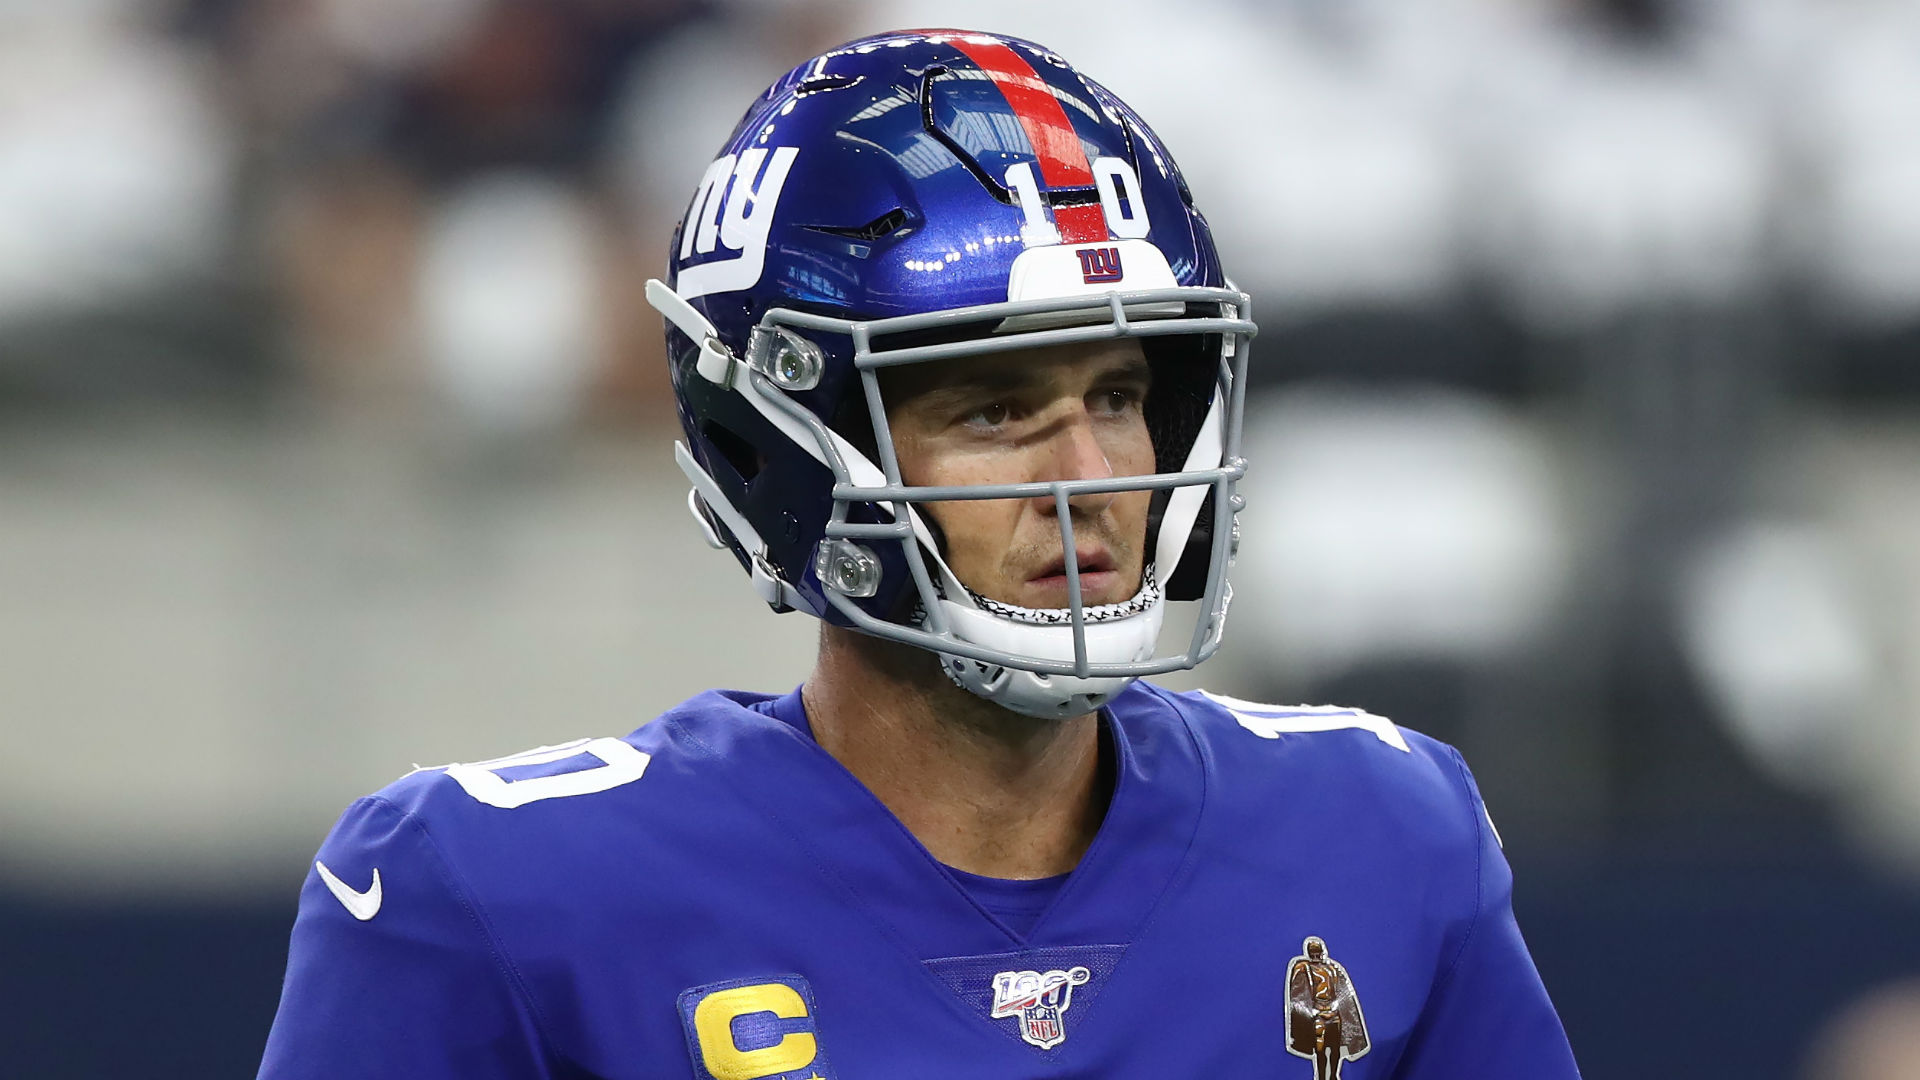 Giants QB Eli Manning reacts to getting benched: 'I'm not dying and the season is not over'